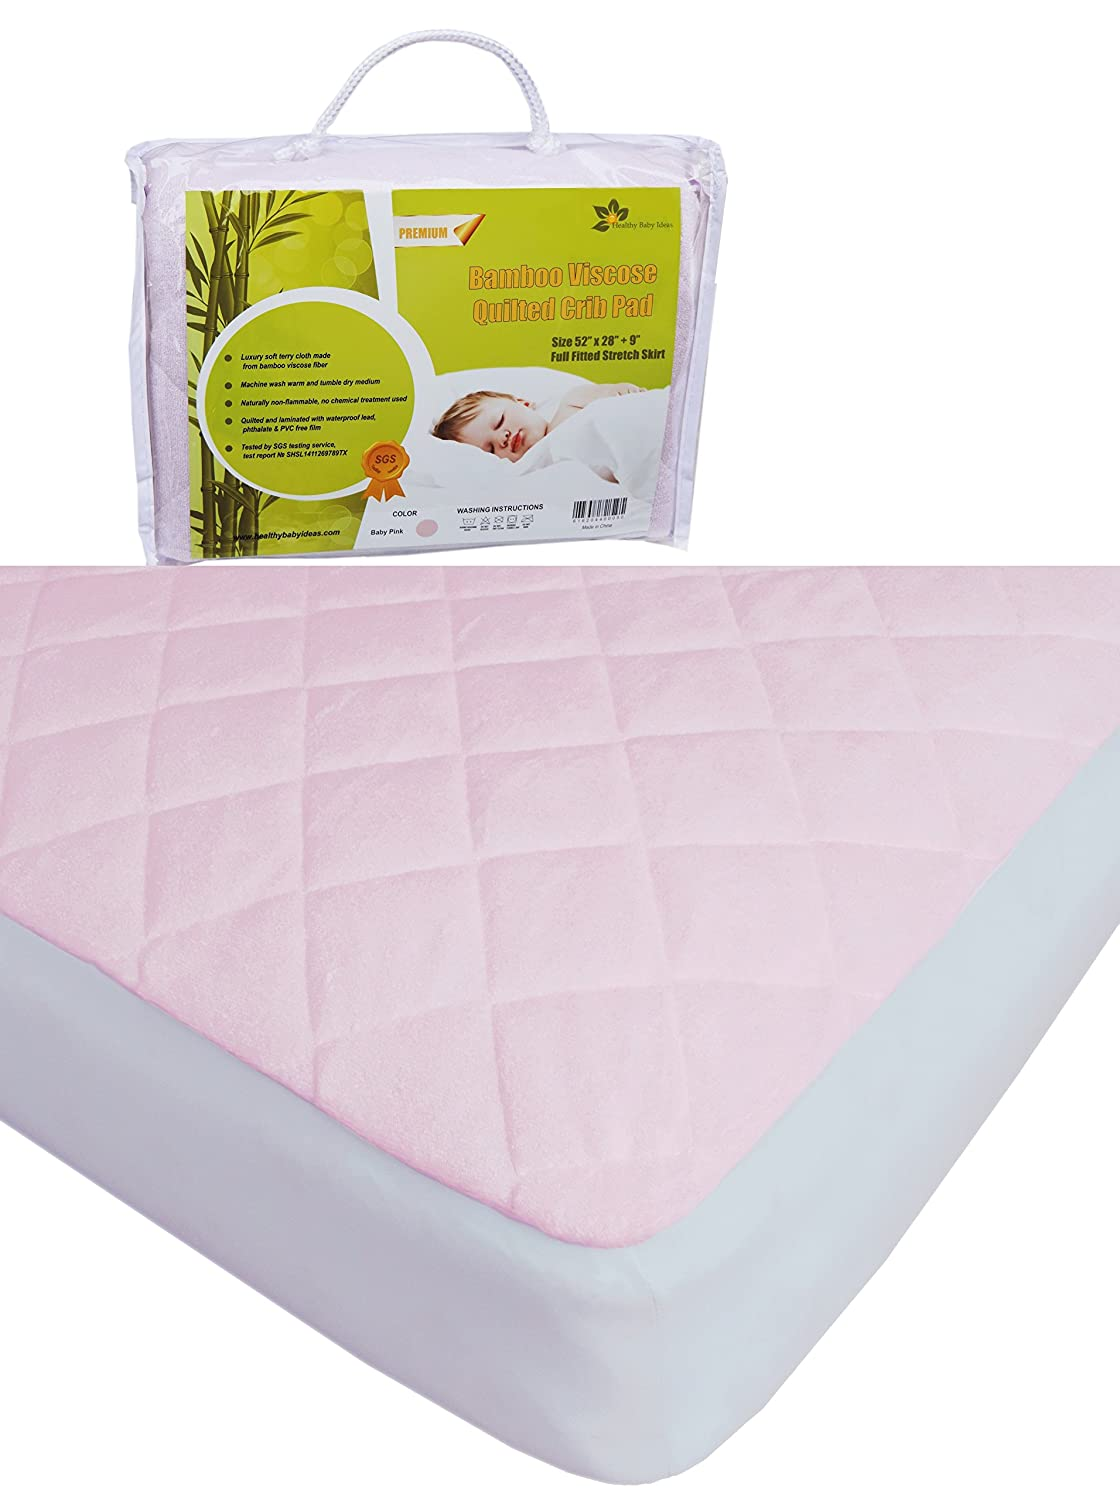 a crib benefits baby pad cribs mattress sleep encasement feature sealy blog time of